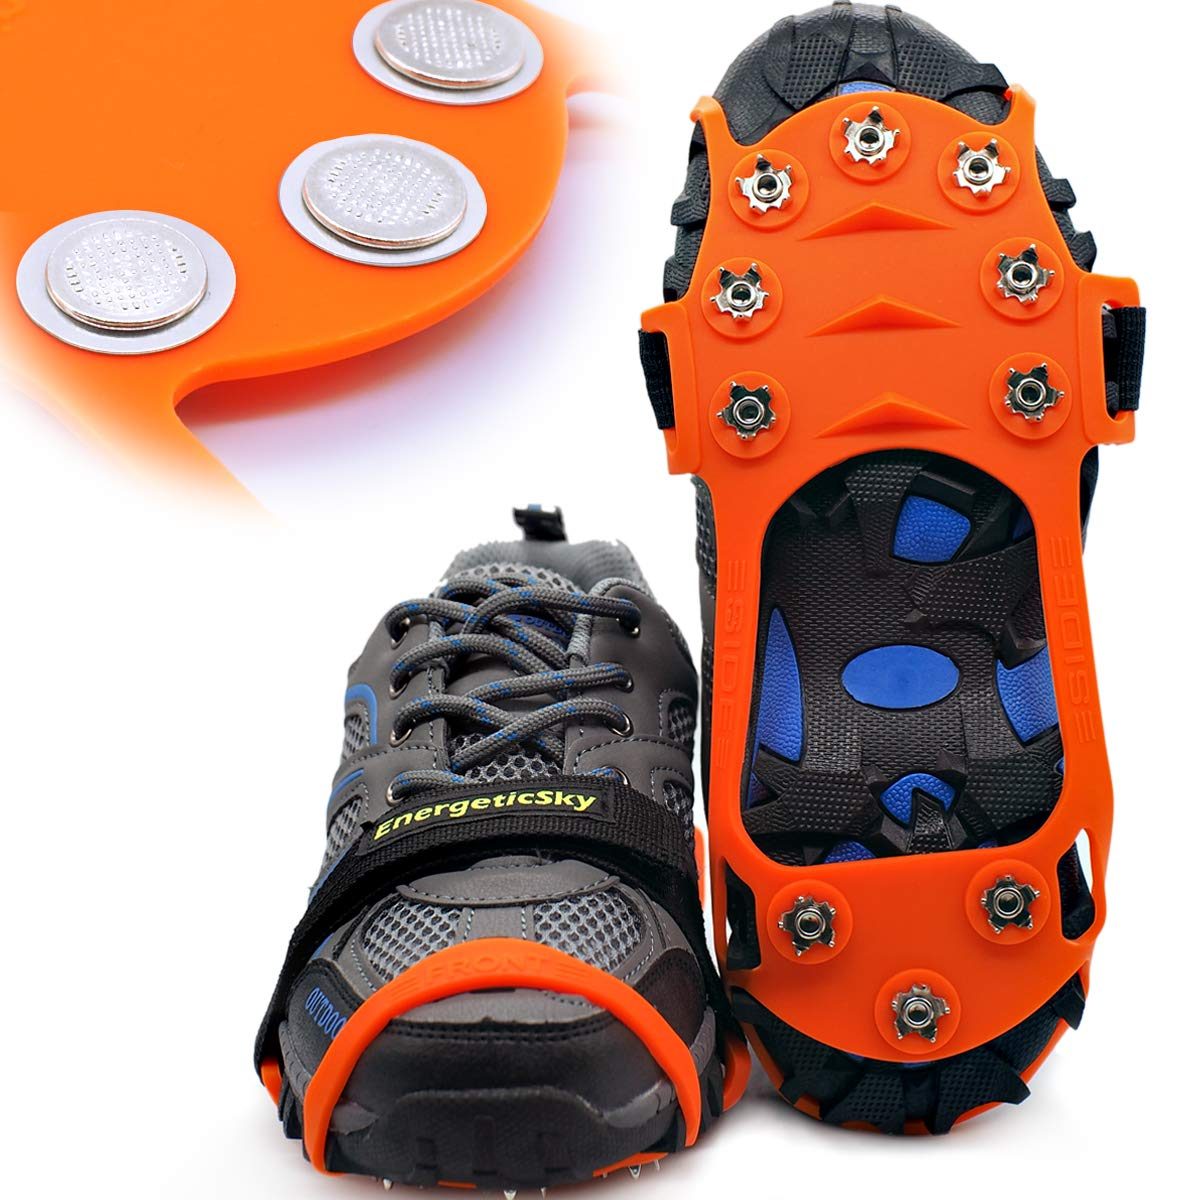 Songwin Glace Traction Crampons Antidérapant sur Chaussures/Bottes 10 Clous à Neige Grips Crampons Crampons Pointes, Le Seul Design innovant sur .